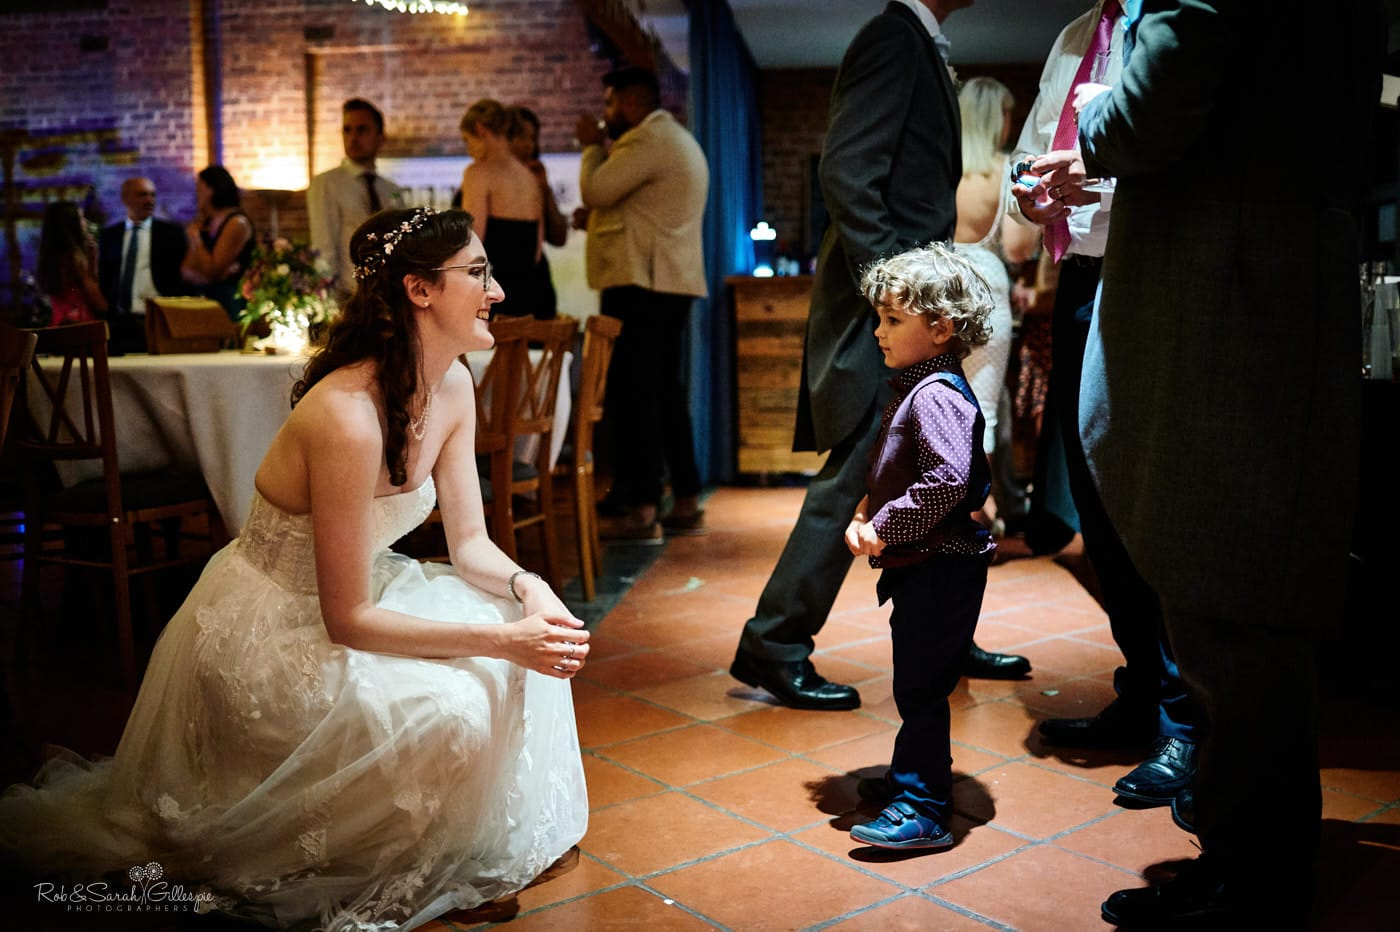 Bride talks to young boy at wedding reception